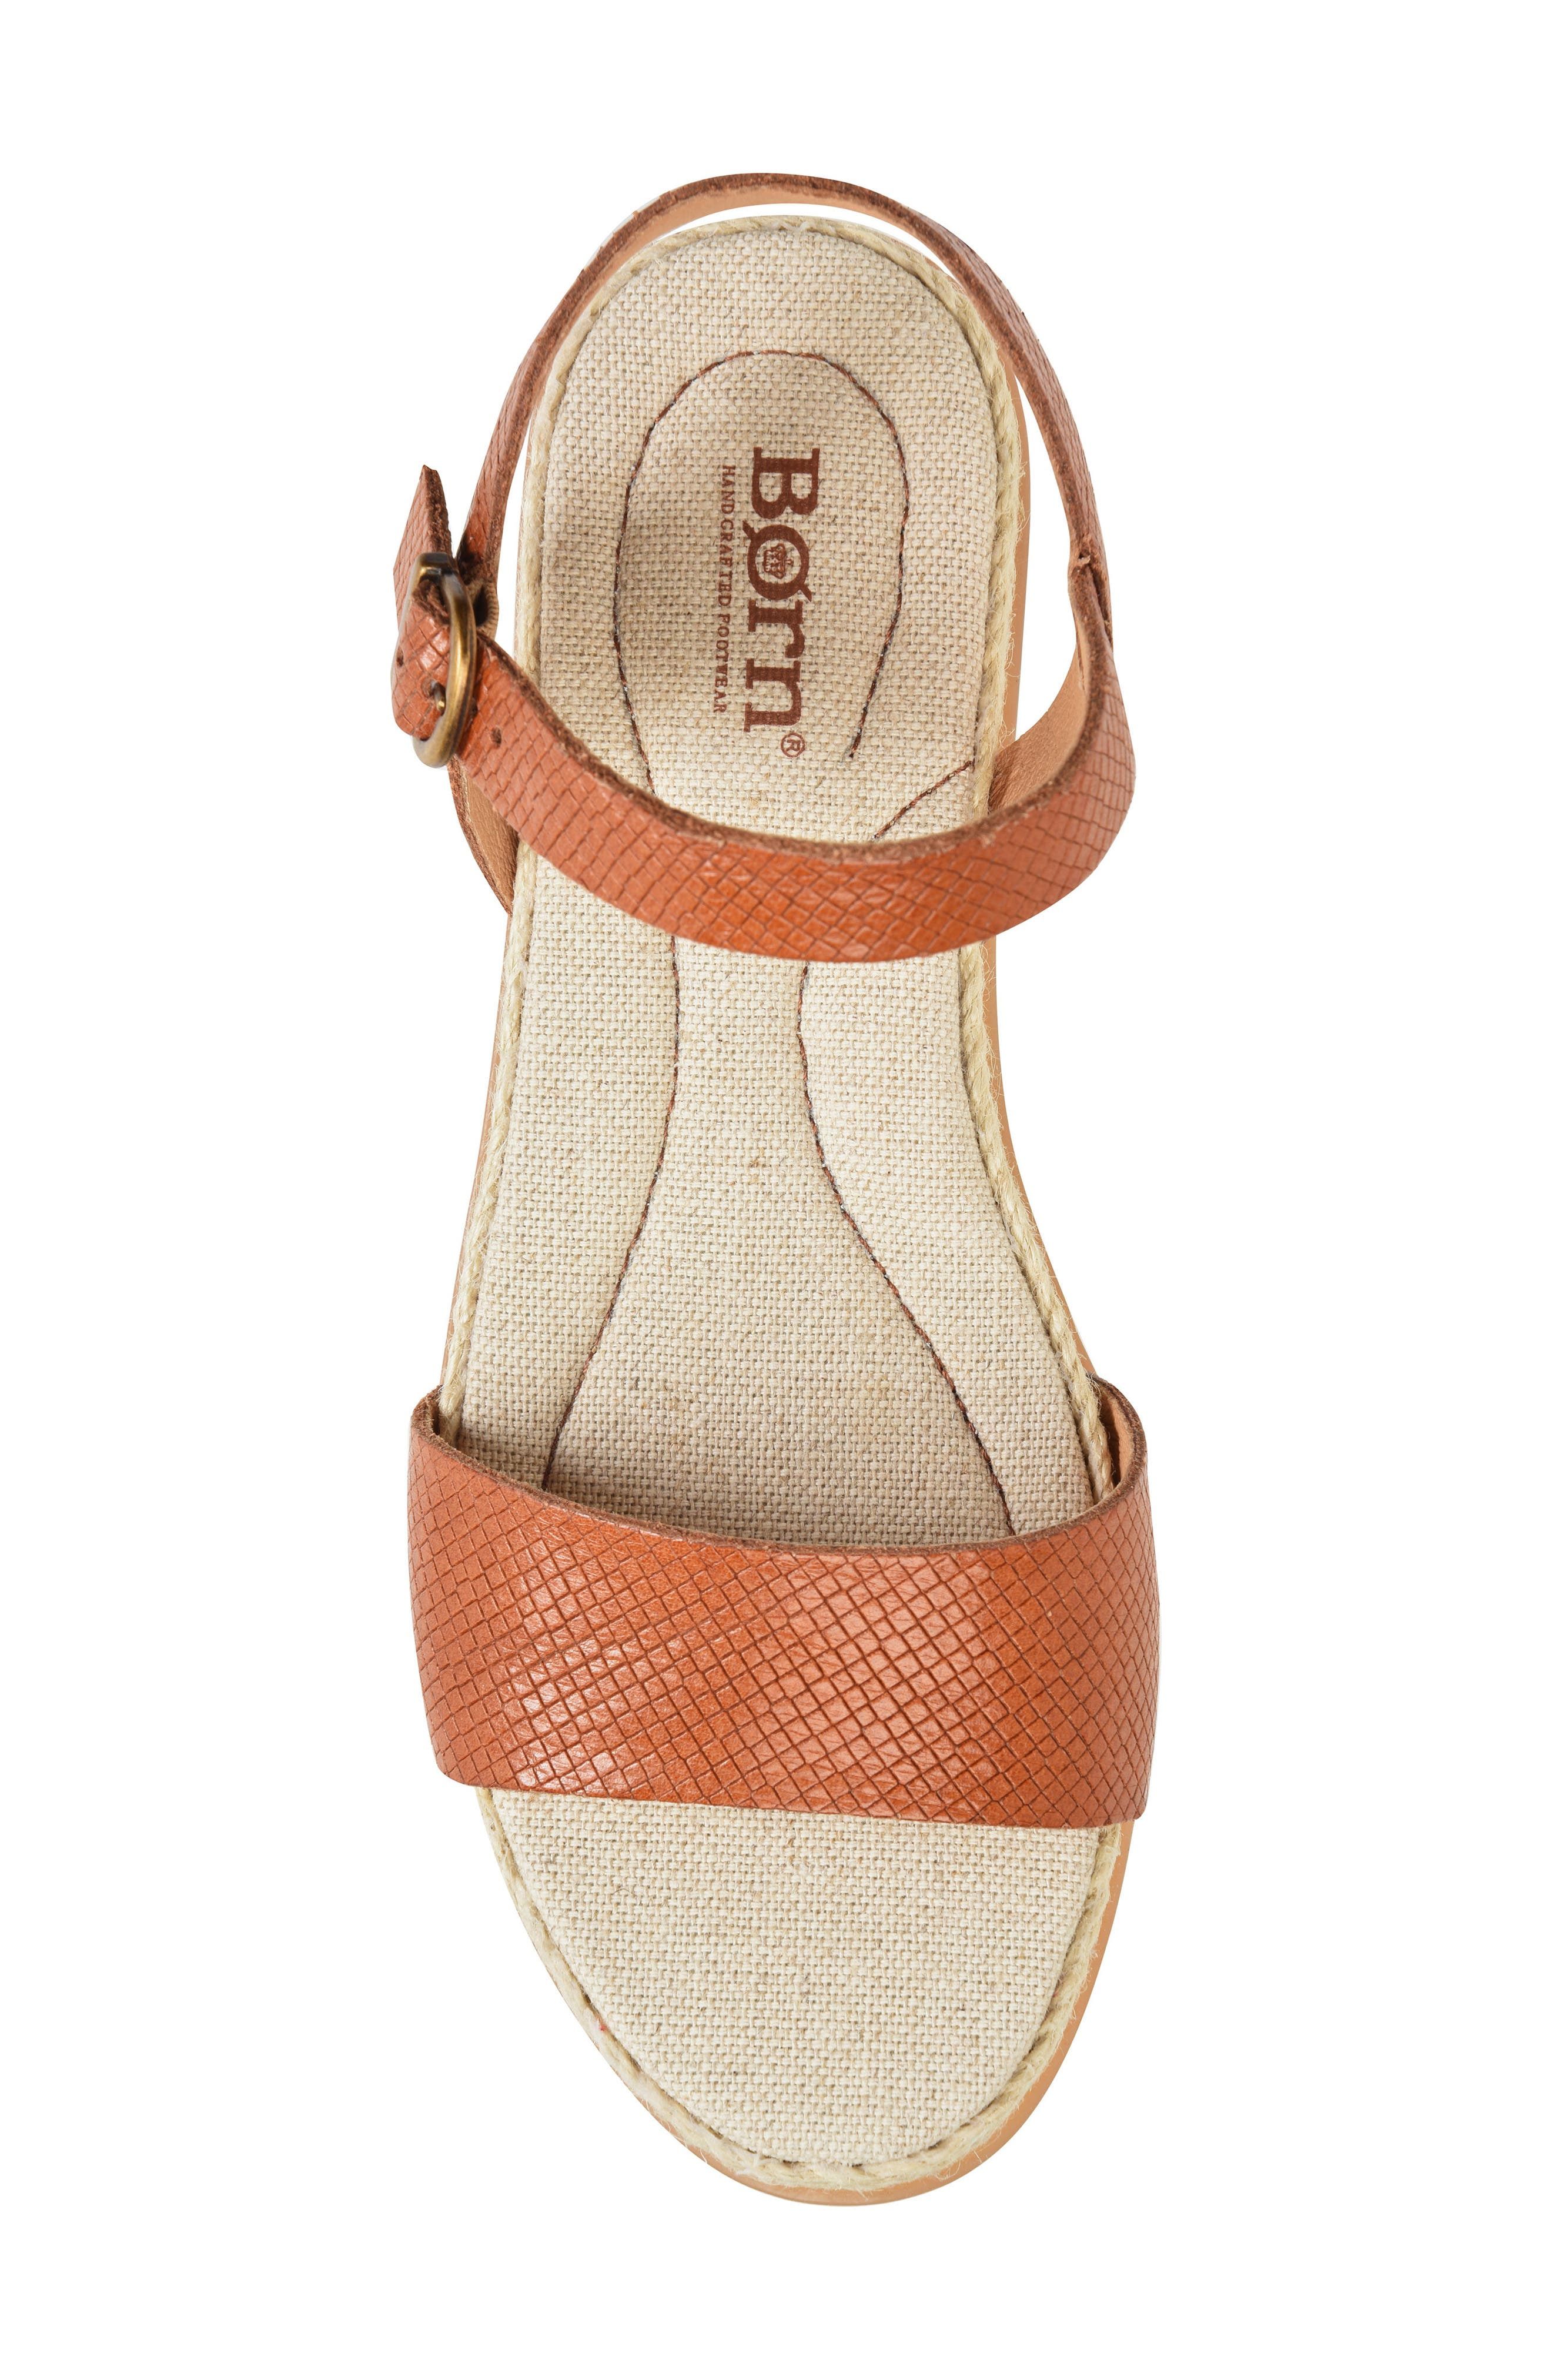 Welch Sandal,                             Alternate thumbnail 5, color,                             Brown Leather